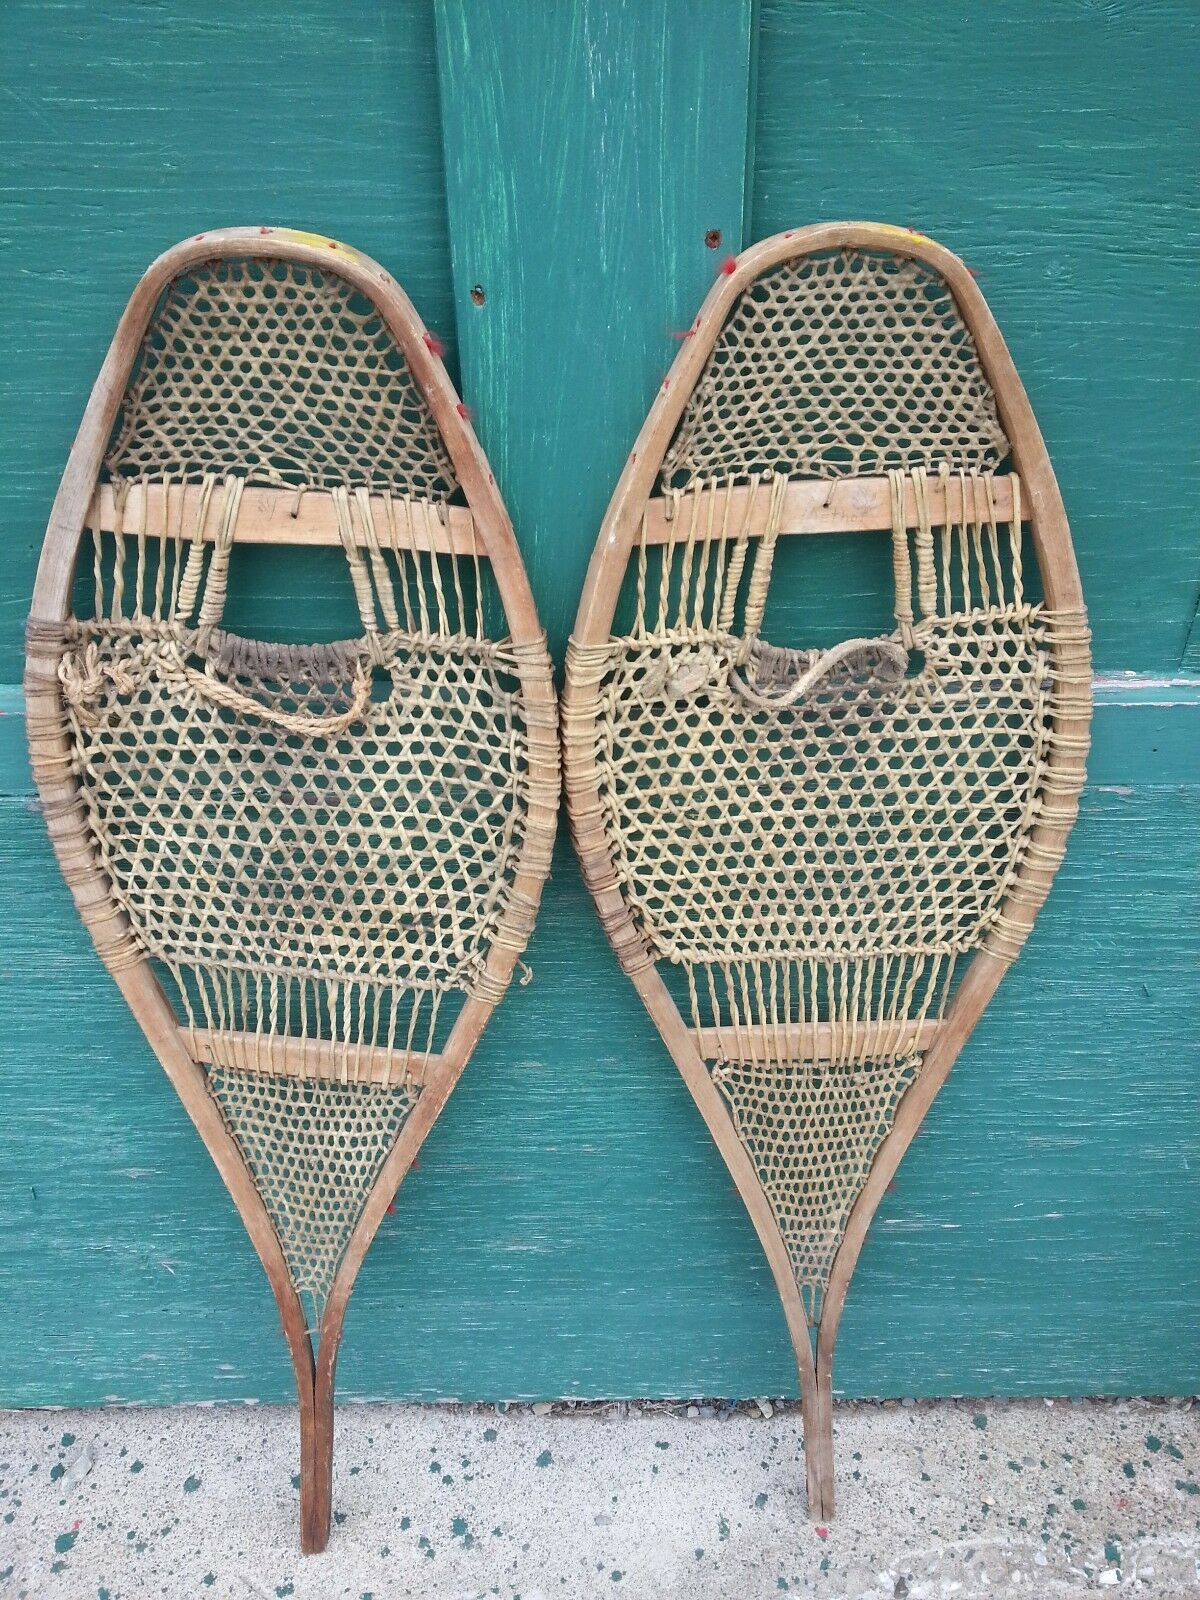 INTERESTING OLD Snowshoes  37  Long by 12  Wide Great for Decoration  online shopping sports